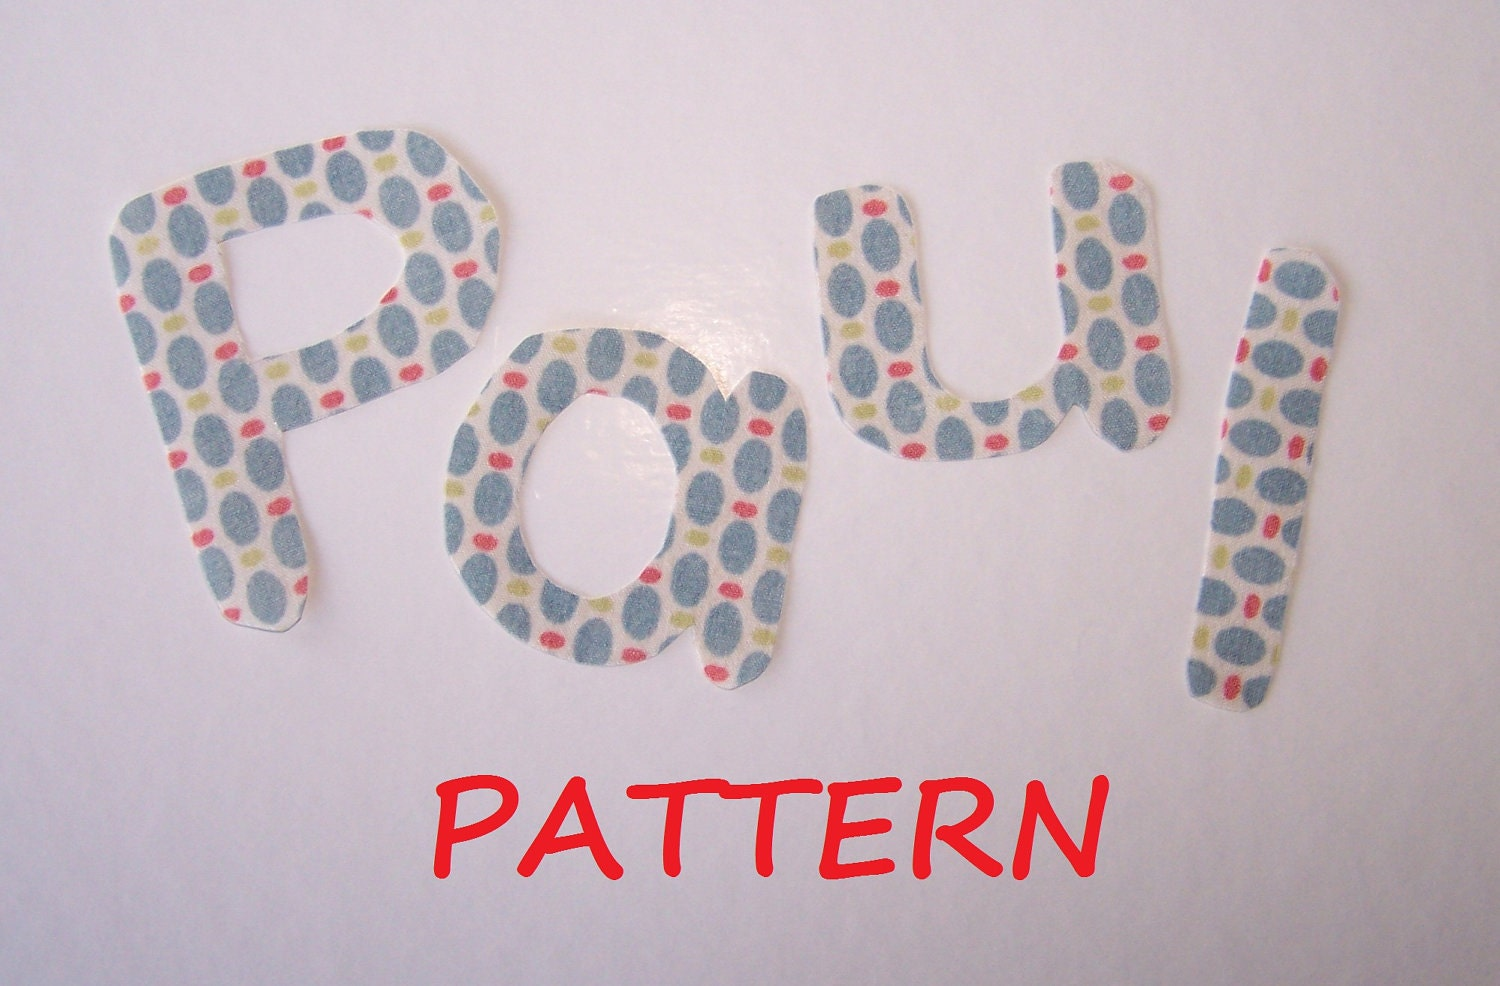 alphabet letters pattern 15 fabric applique pdf alphabet letters pattern 15 fabric applique pdf 247